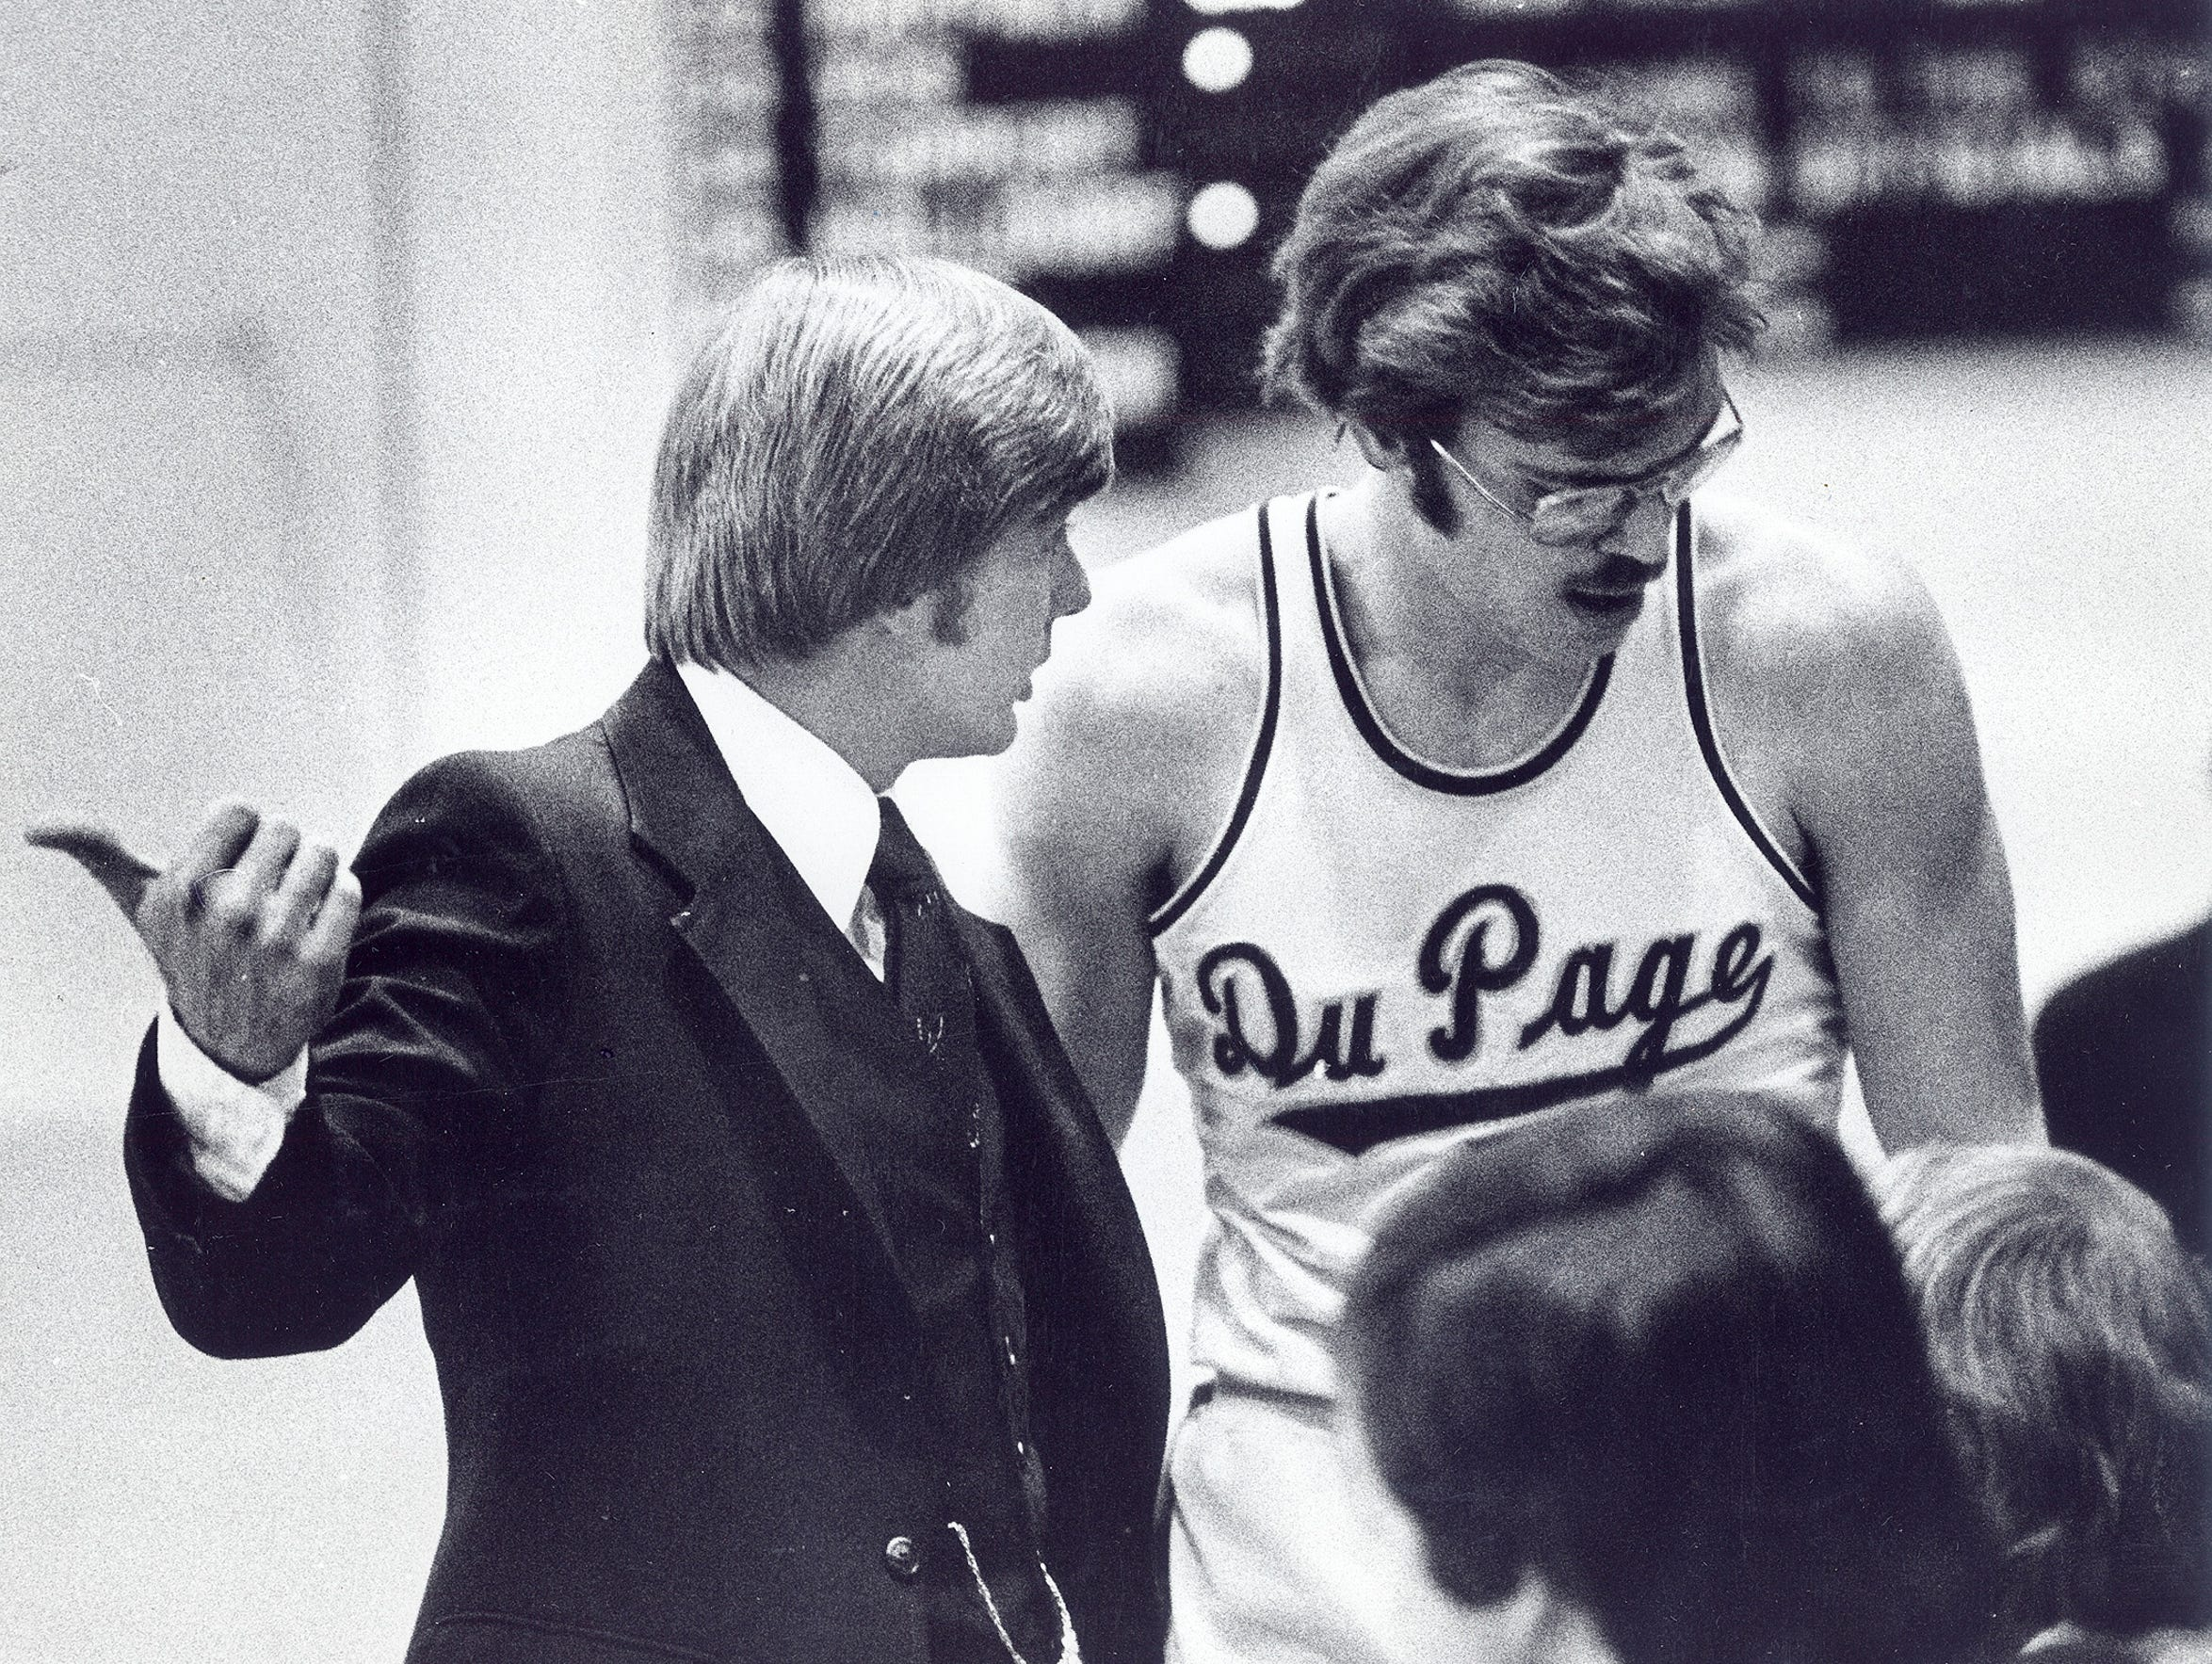 Dick Walters coaching at Du Page before taking the